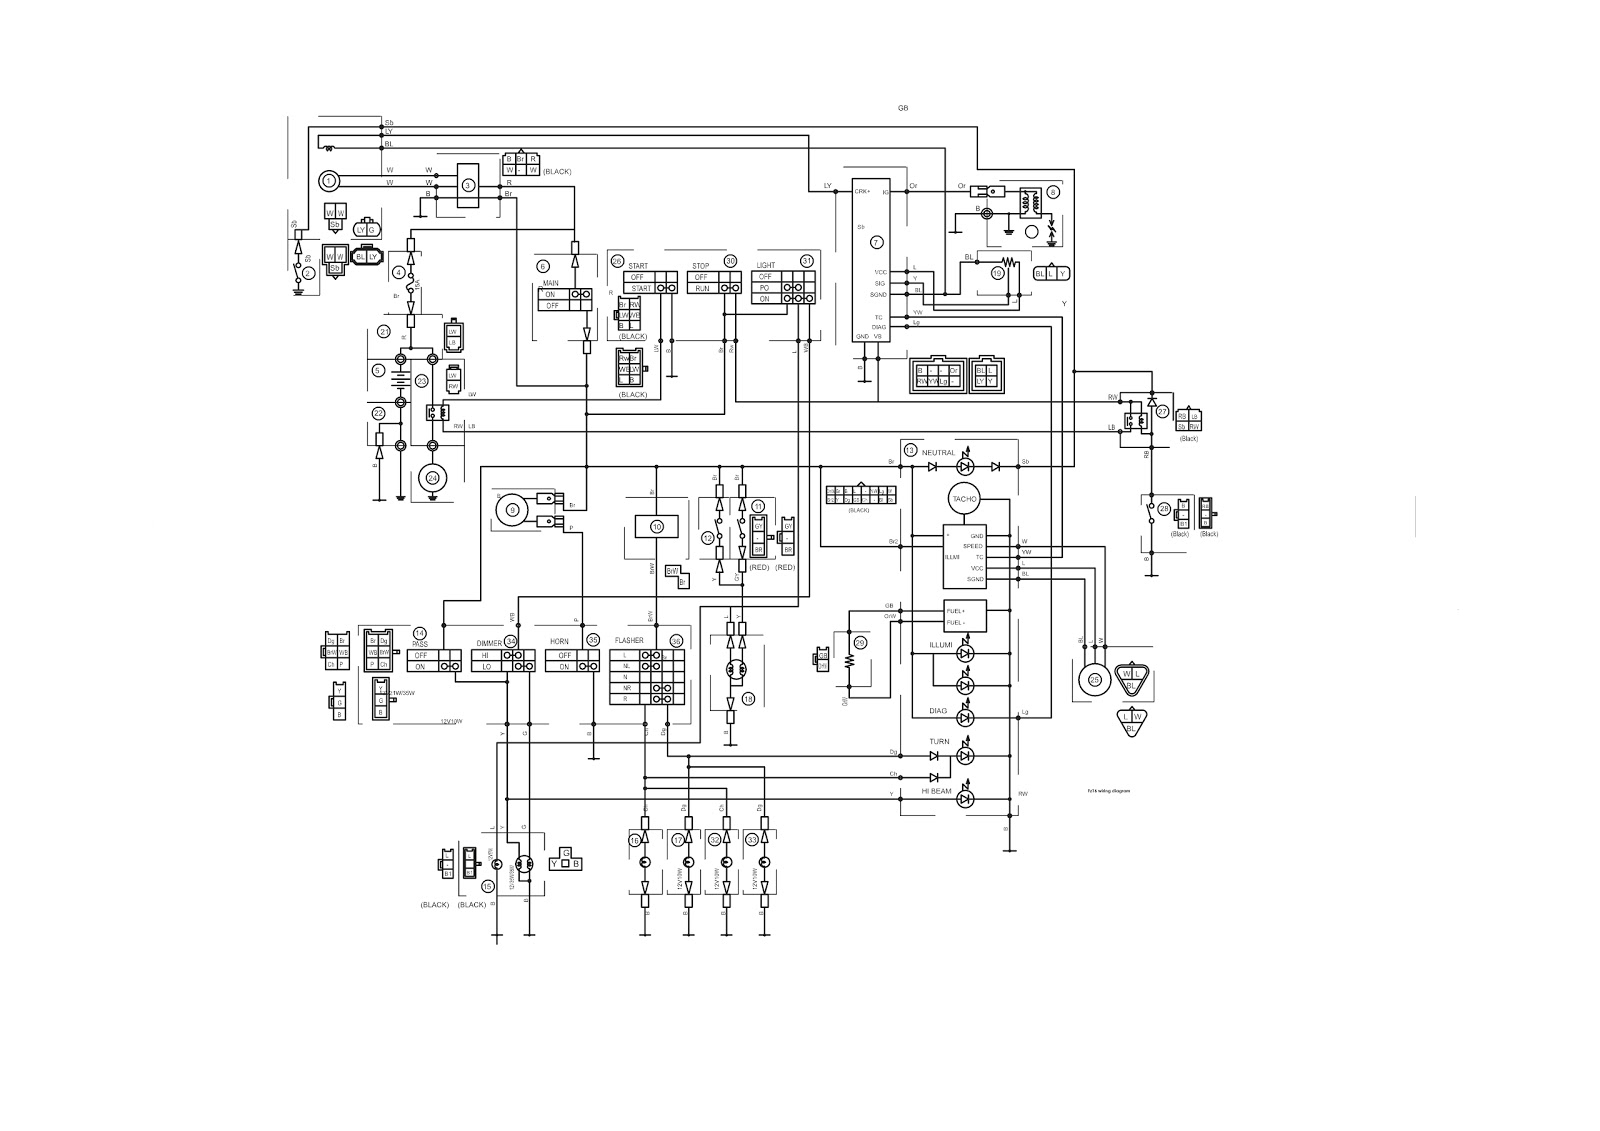 FZ16 (with wiring diagram) | Techy at day, Blogger at noon